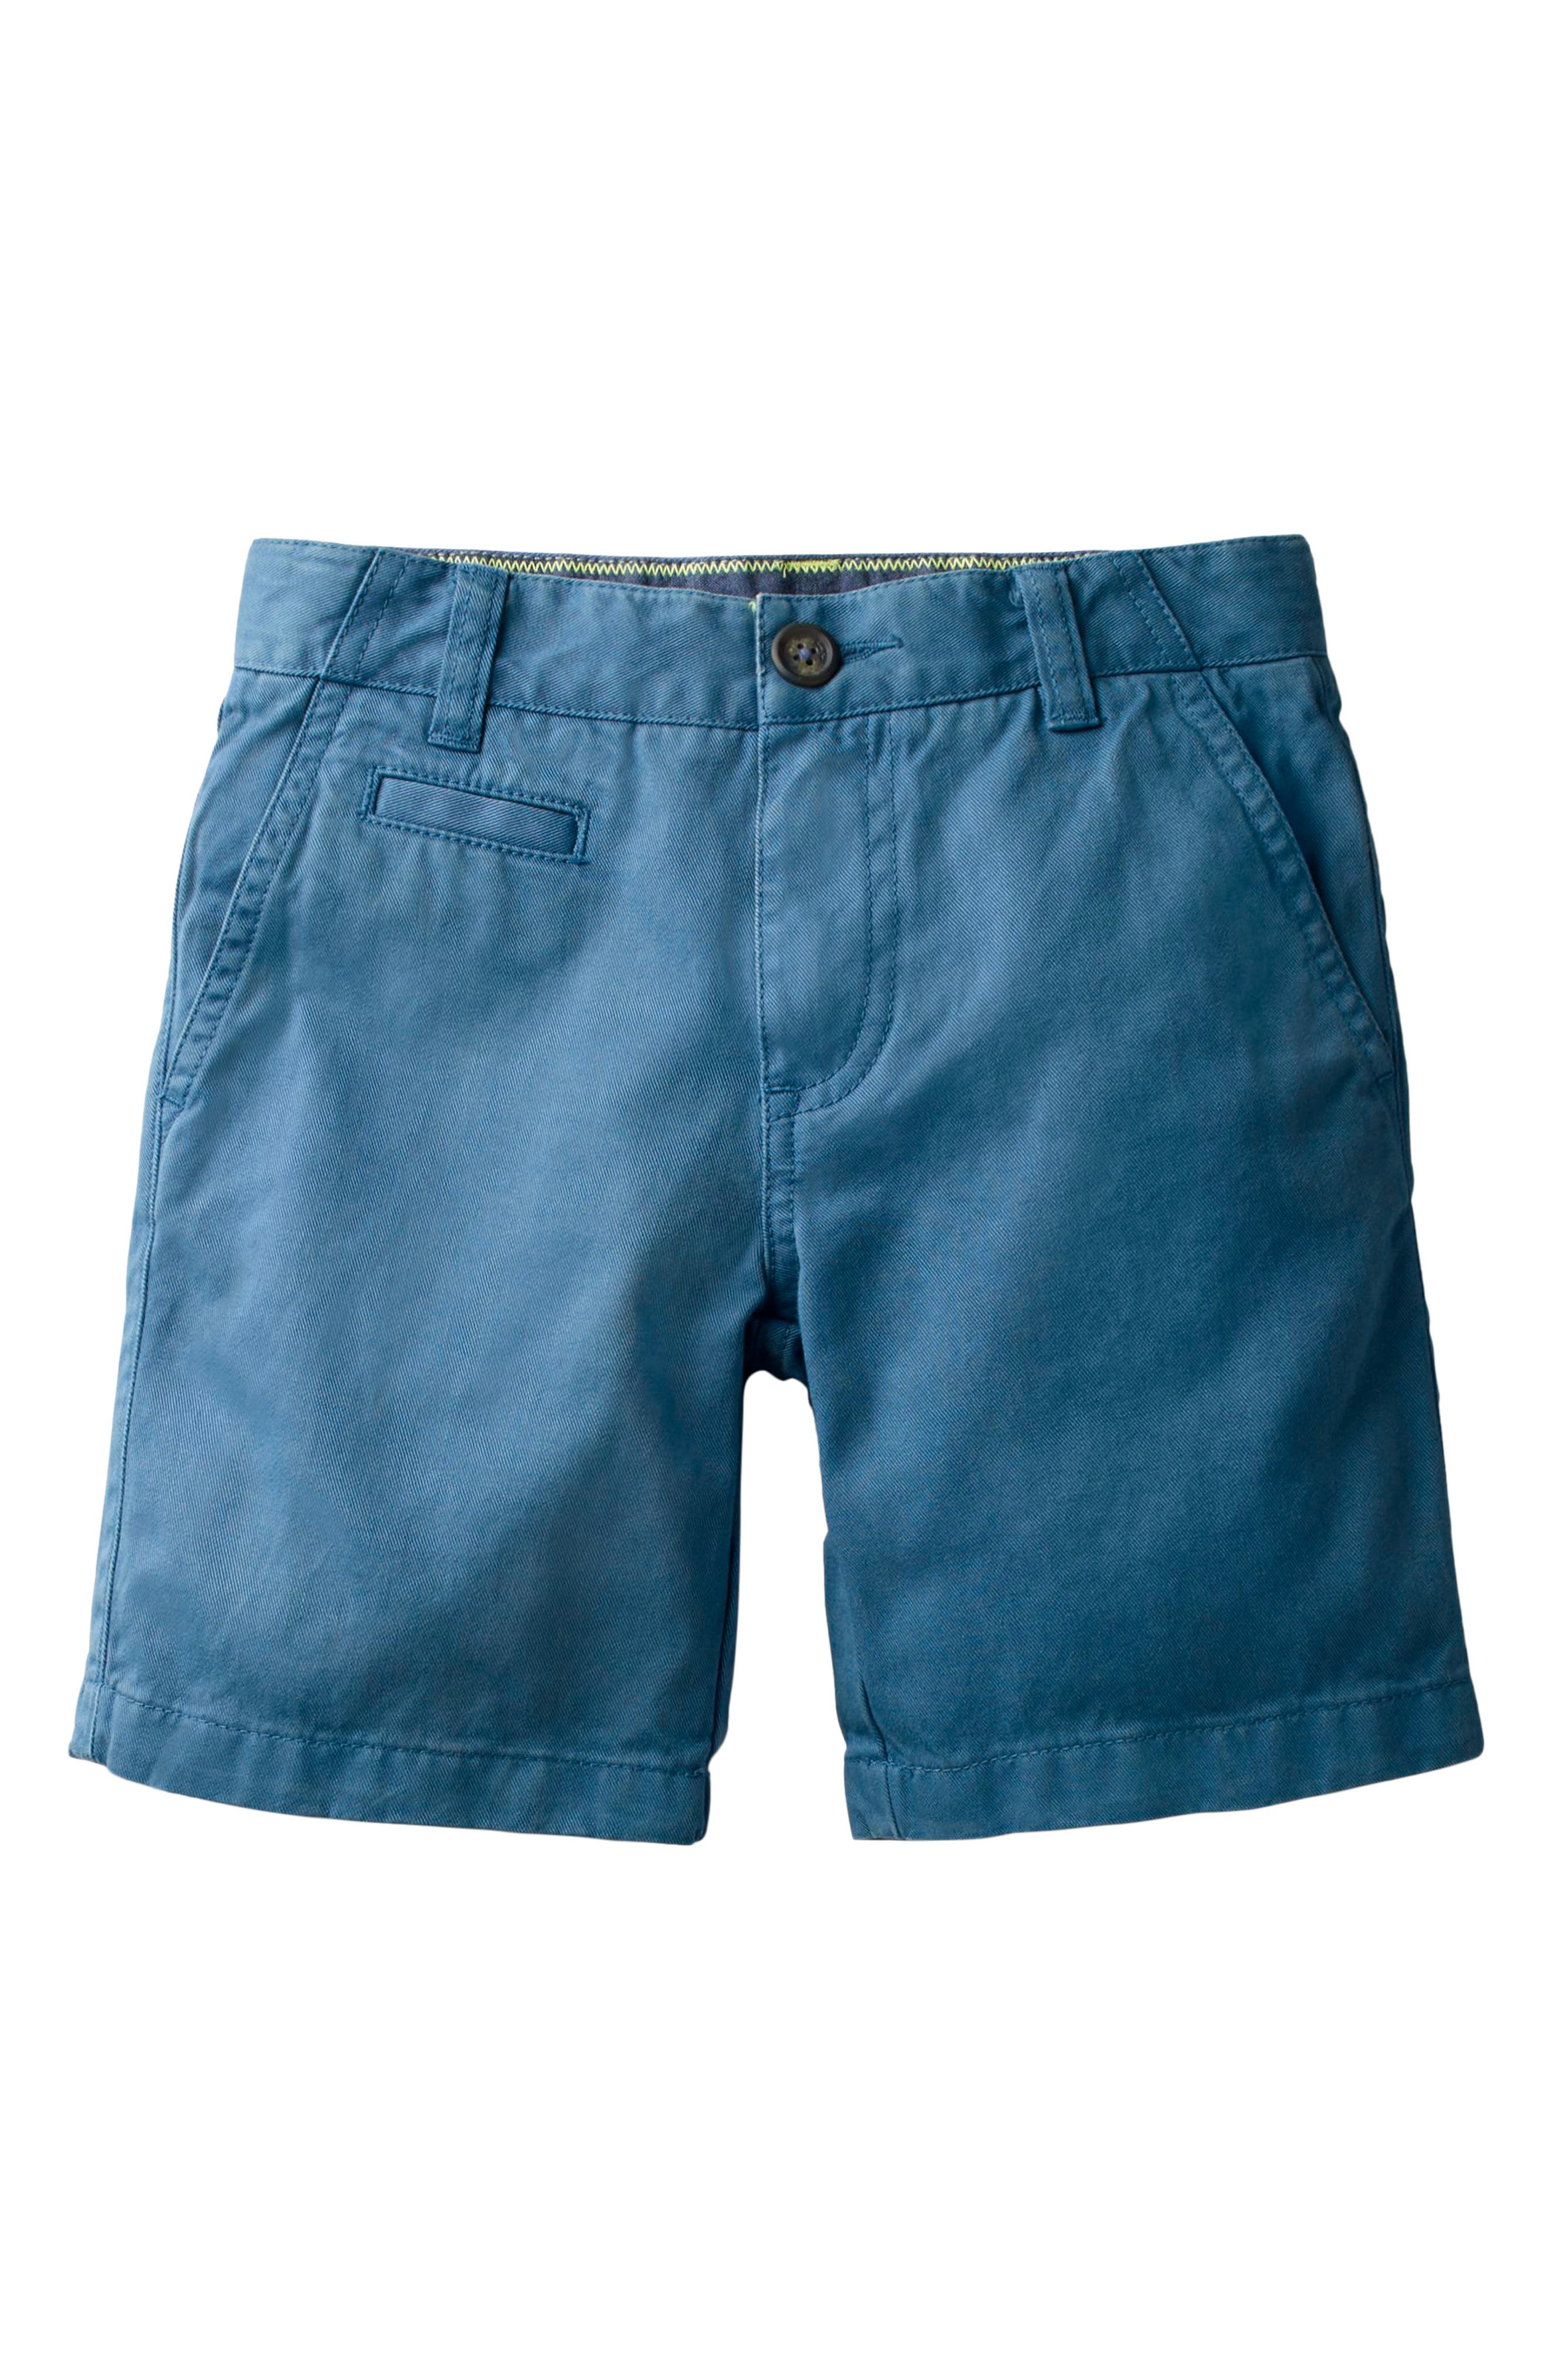 Chino Shorts,                         Main,                         color, Schooner Blue